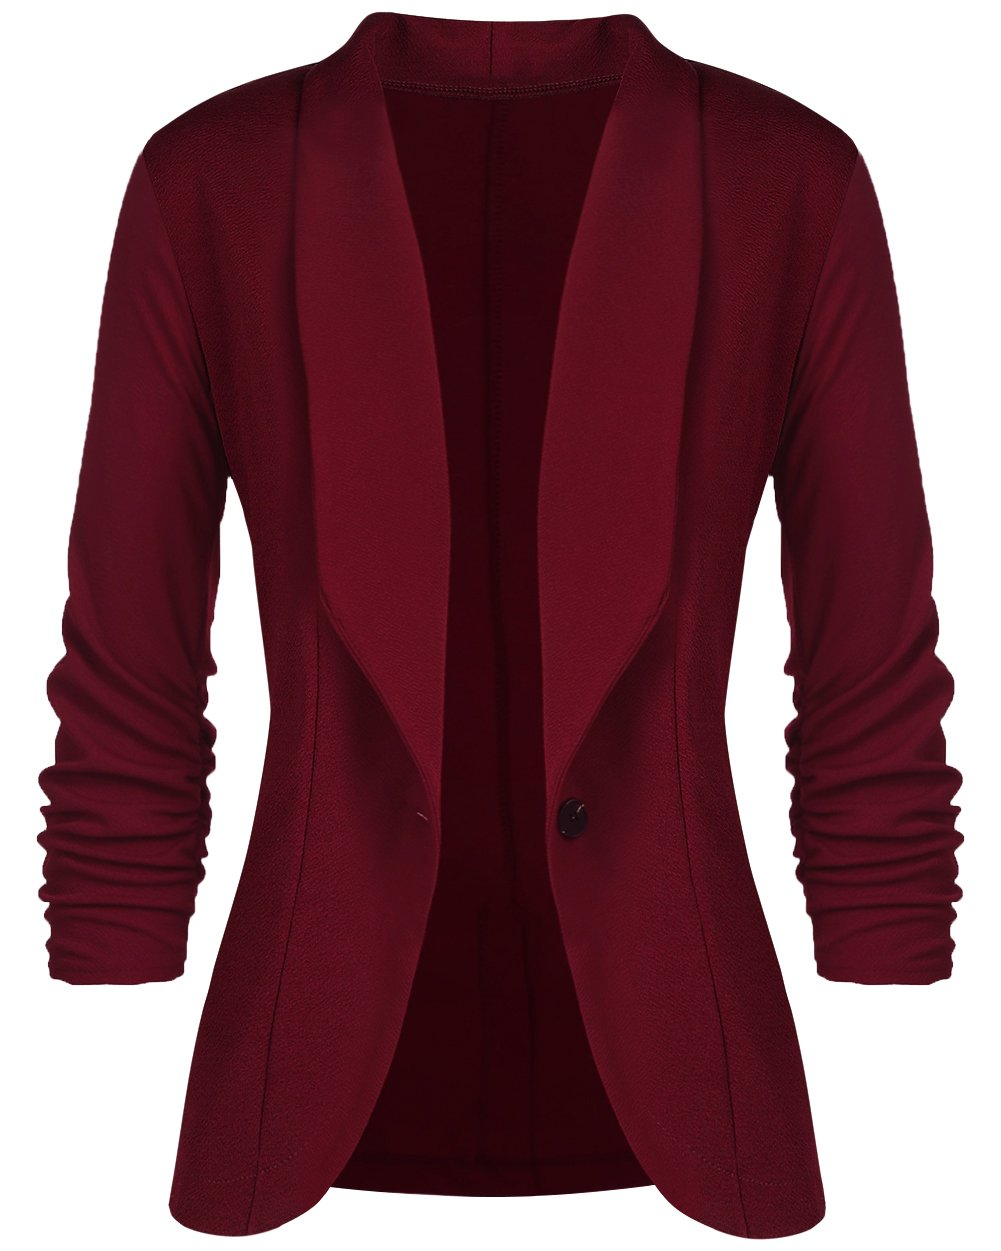 sanatty Women's 3/4 Ruched Sleeve Open Front Lightweight Work Office Blazer Jacket,Winered,Small by sanatty (Image #1)